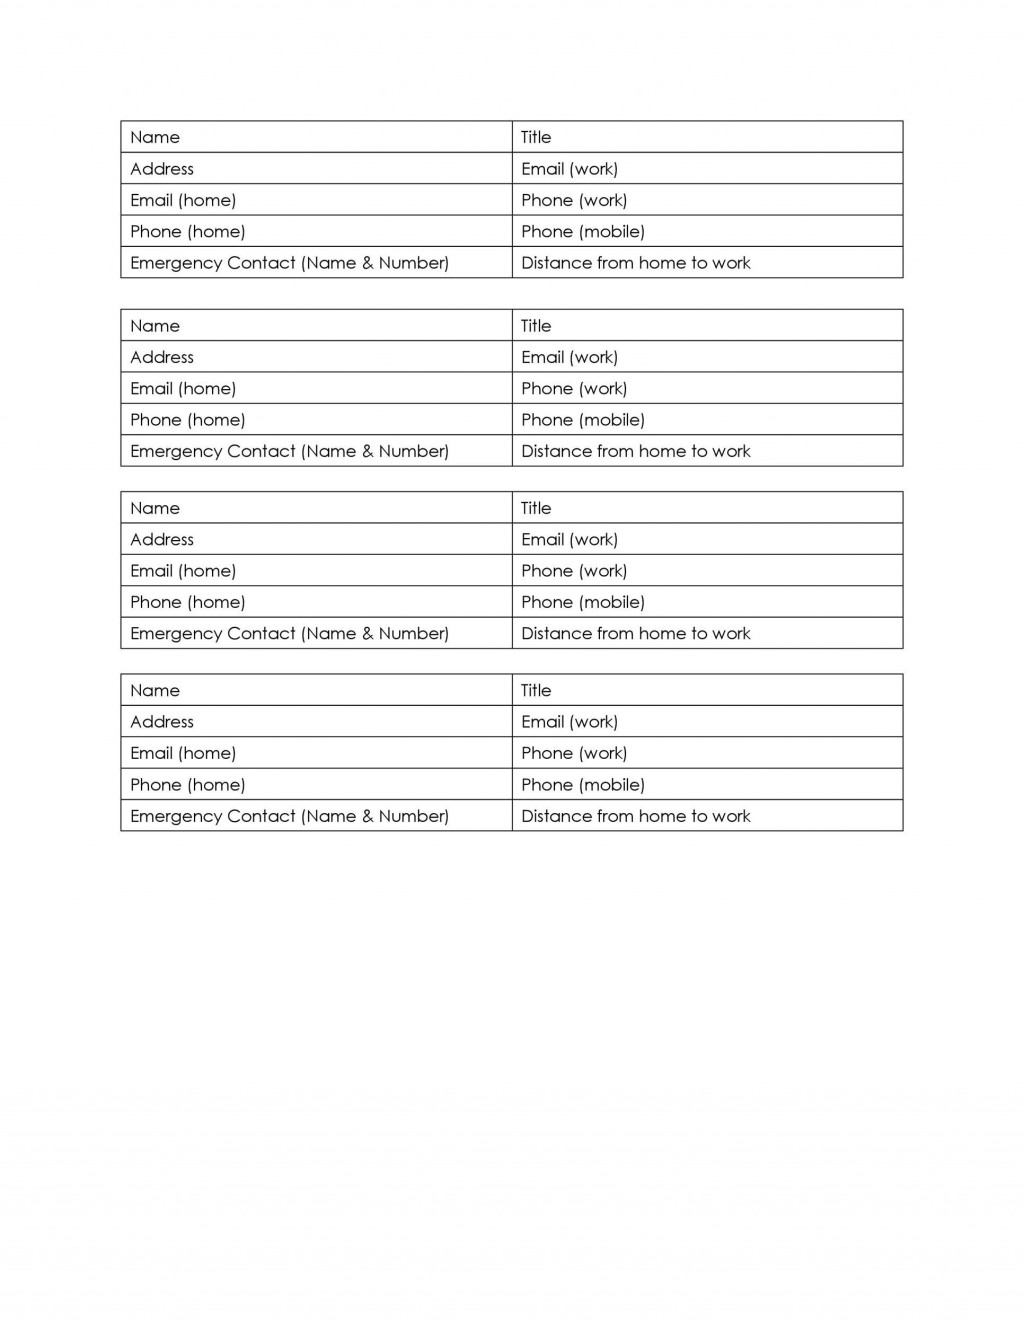 005 Phenomenal Travel Emergency Contact Card Template Design Large